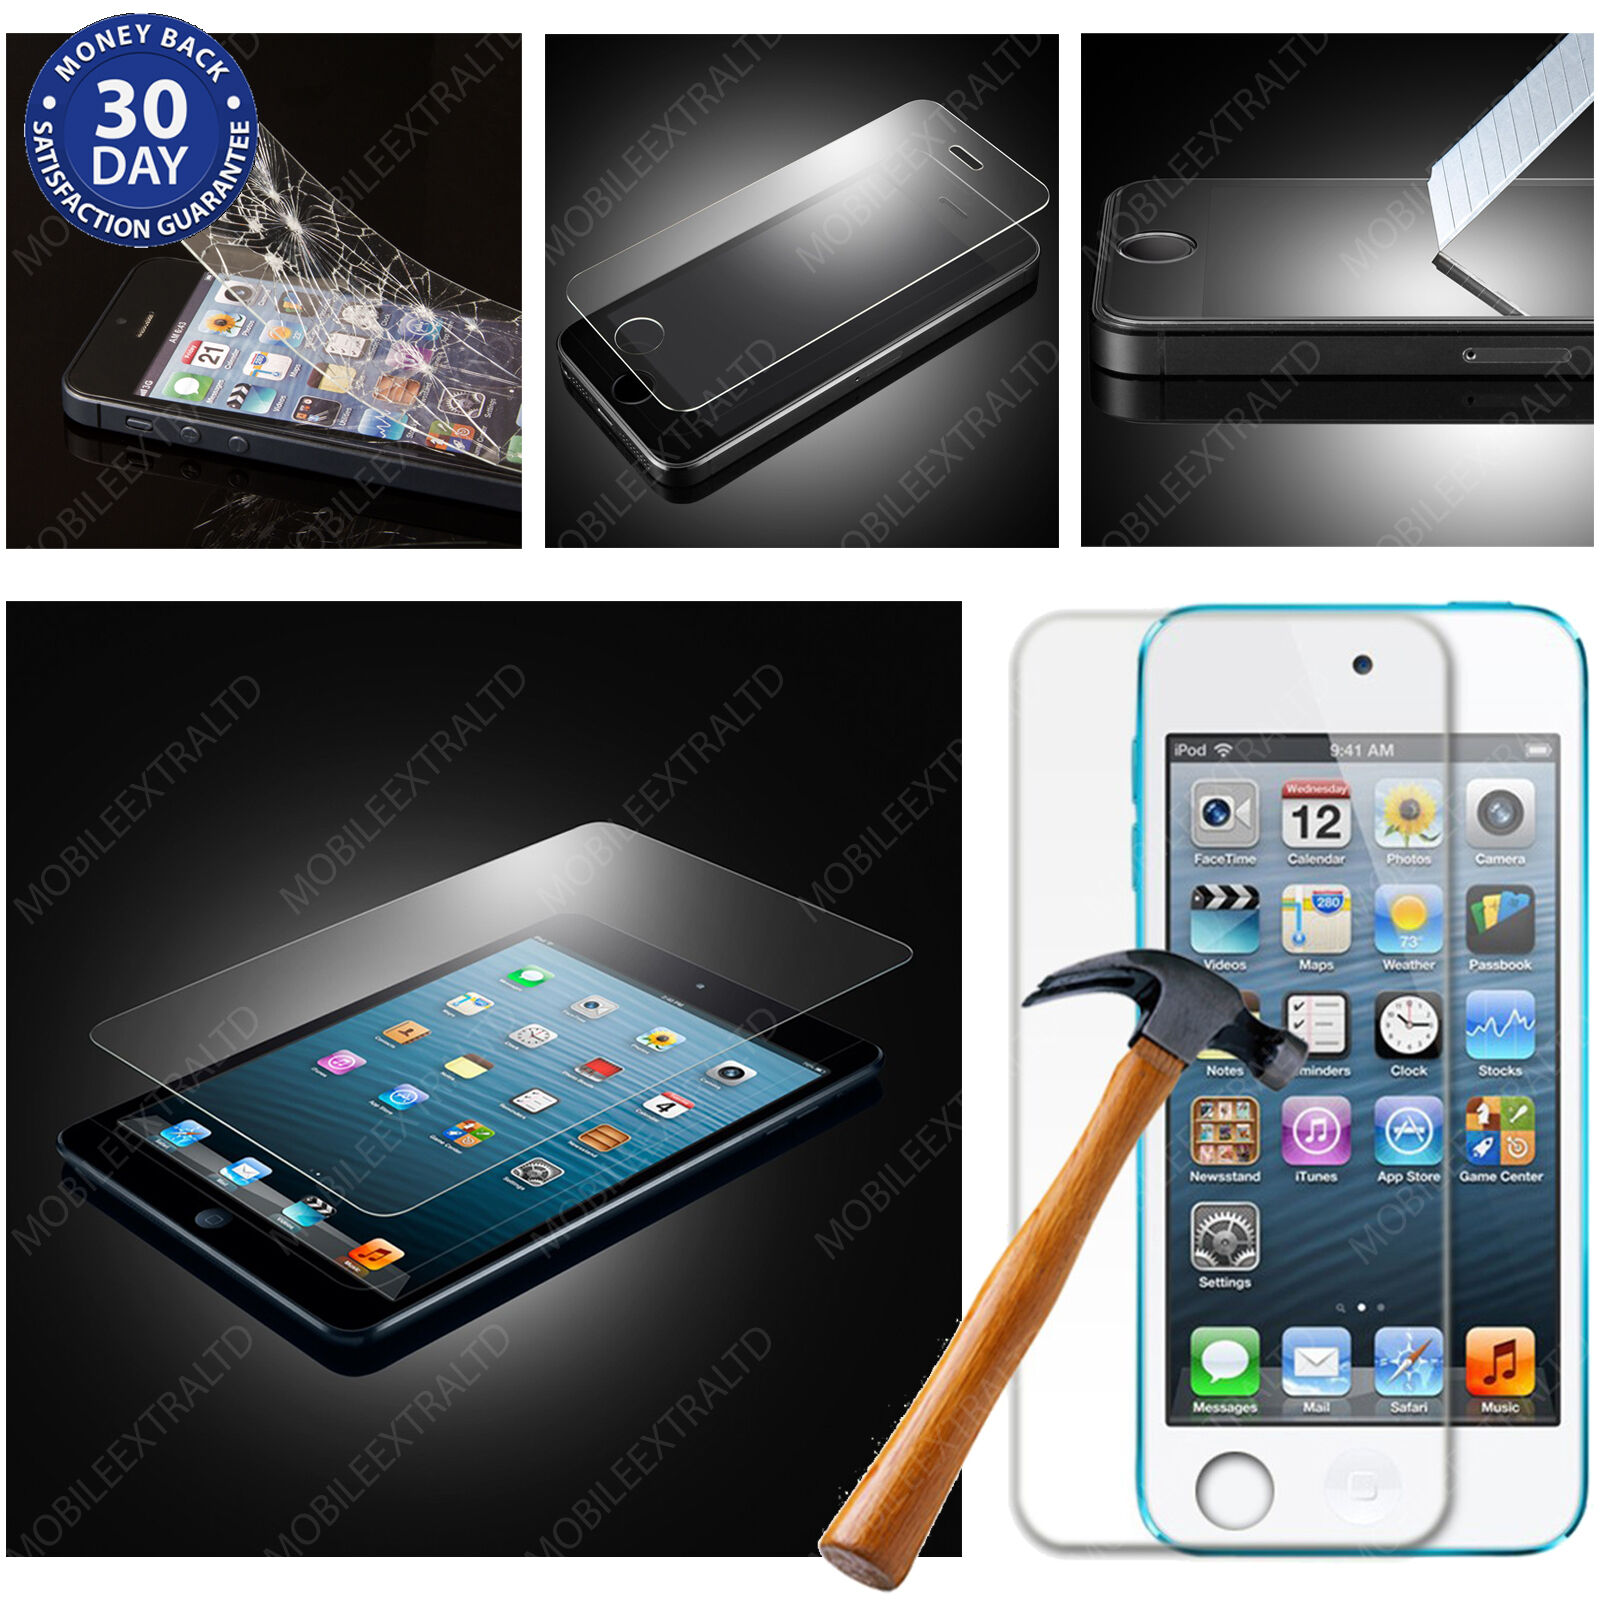 100% GENUINE TEMPERED GLASS FILM SCREEN COVER PROTECTOR FOR iPHONE iPAD TABLETS